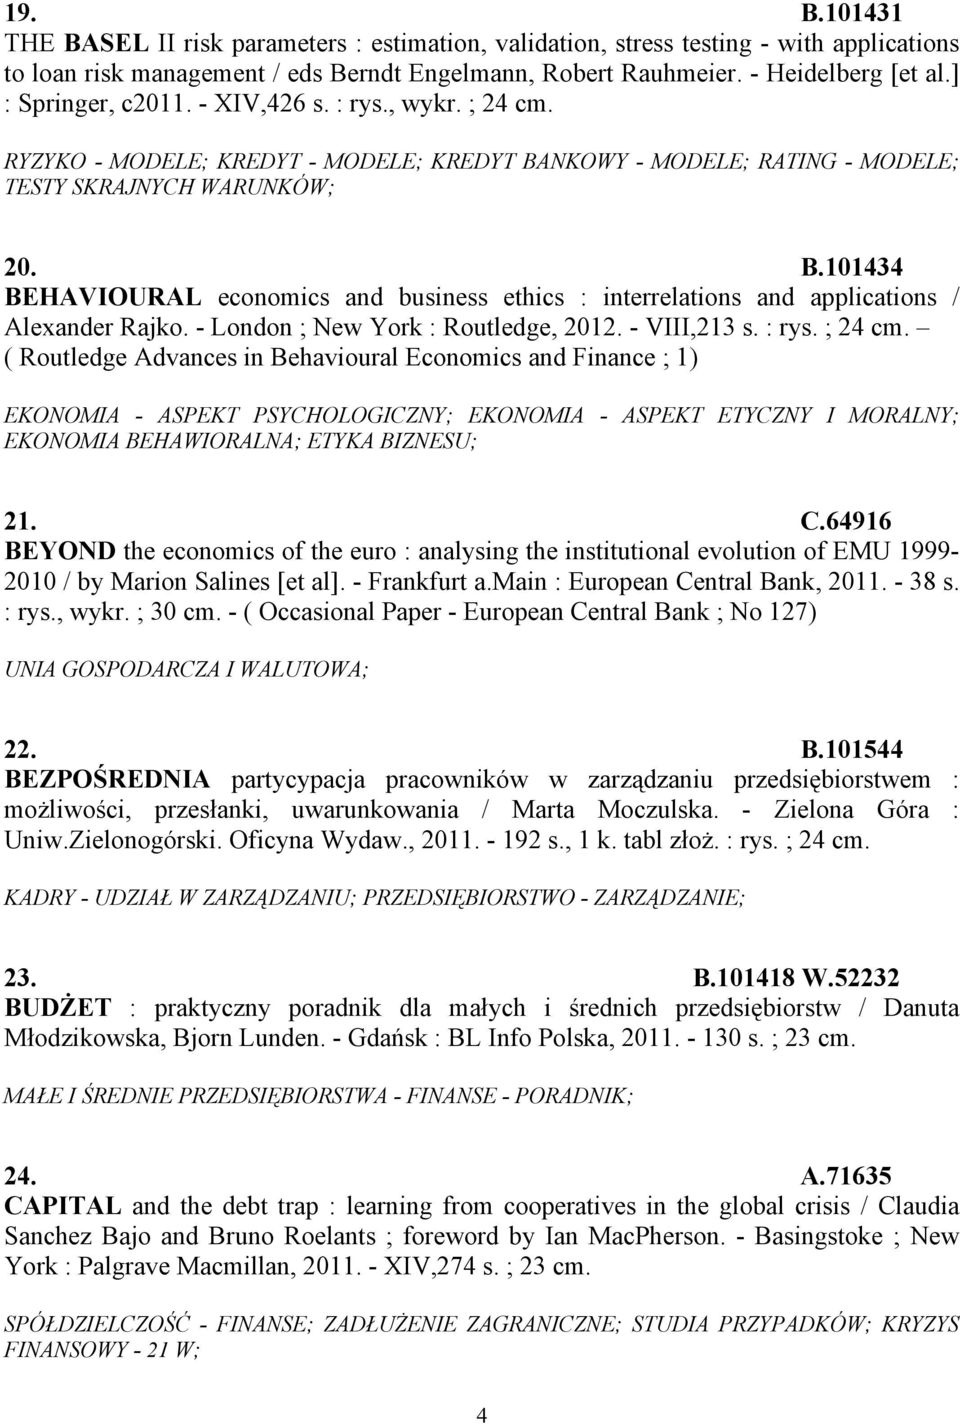 NKOWY - MODELE; RATING - MODELE; TESTY SKRAJNYCH WARUNKÓW; 20. B.101434 BEHAVIOURAL economics and business ethics : interrelations and applications / Alexander Rajko.